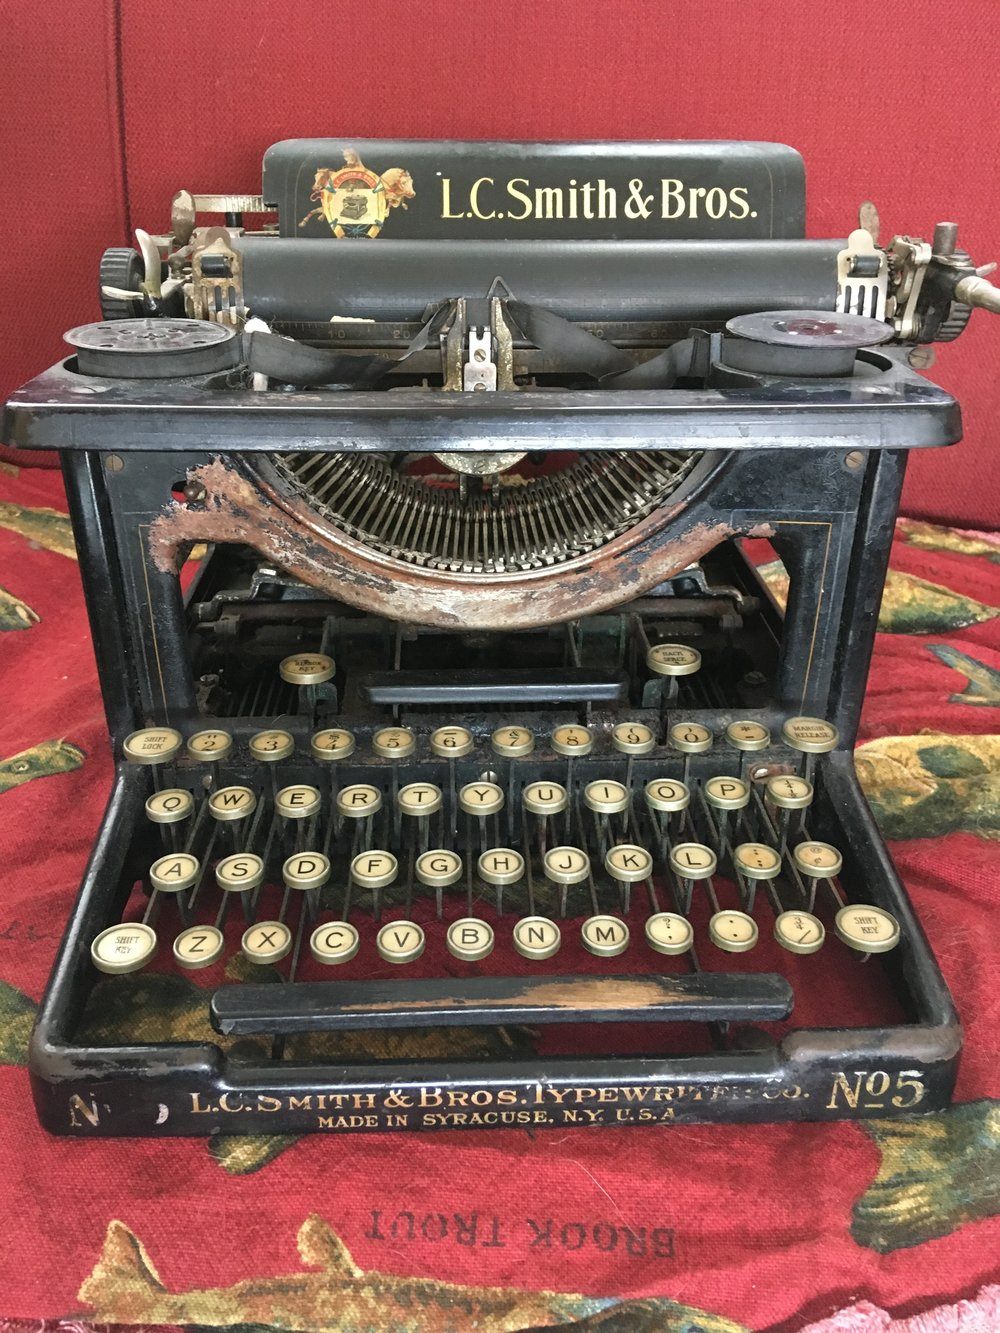 This gem was my Dad's and he used it in his youth. Notice it was before Mr. Smith met Mr. Corona. I also used this in my tender youth to pen great American short stories of my own.